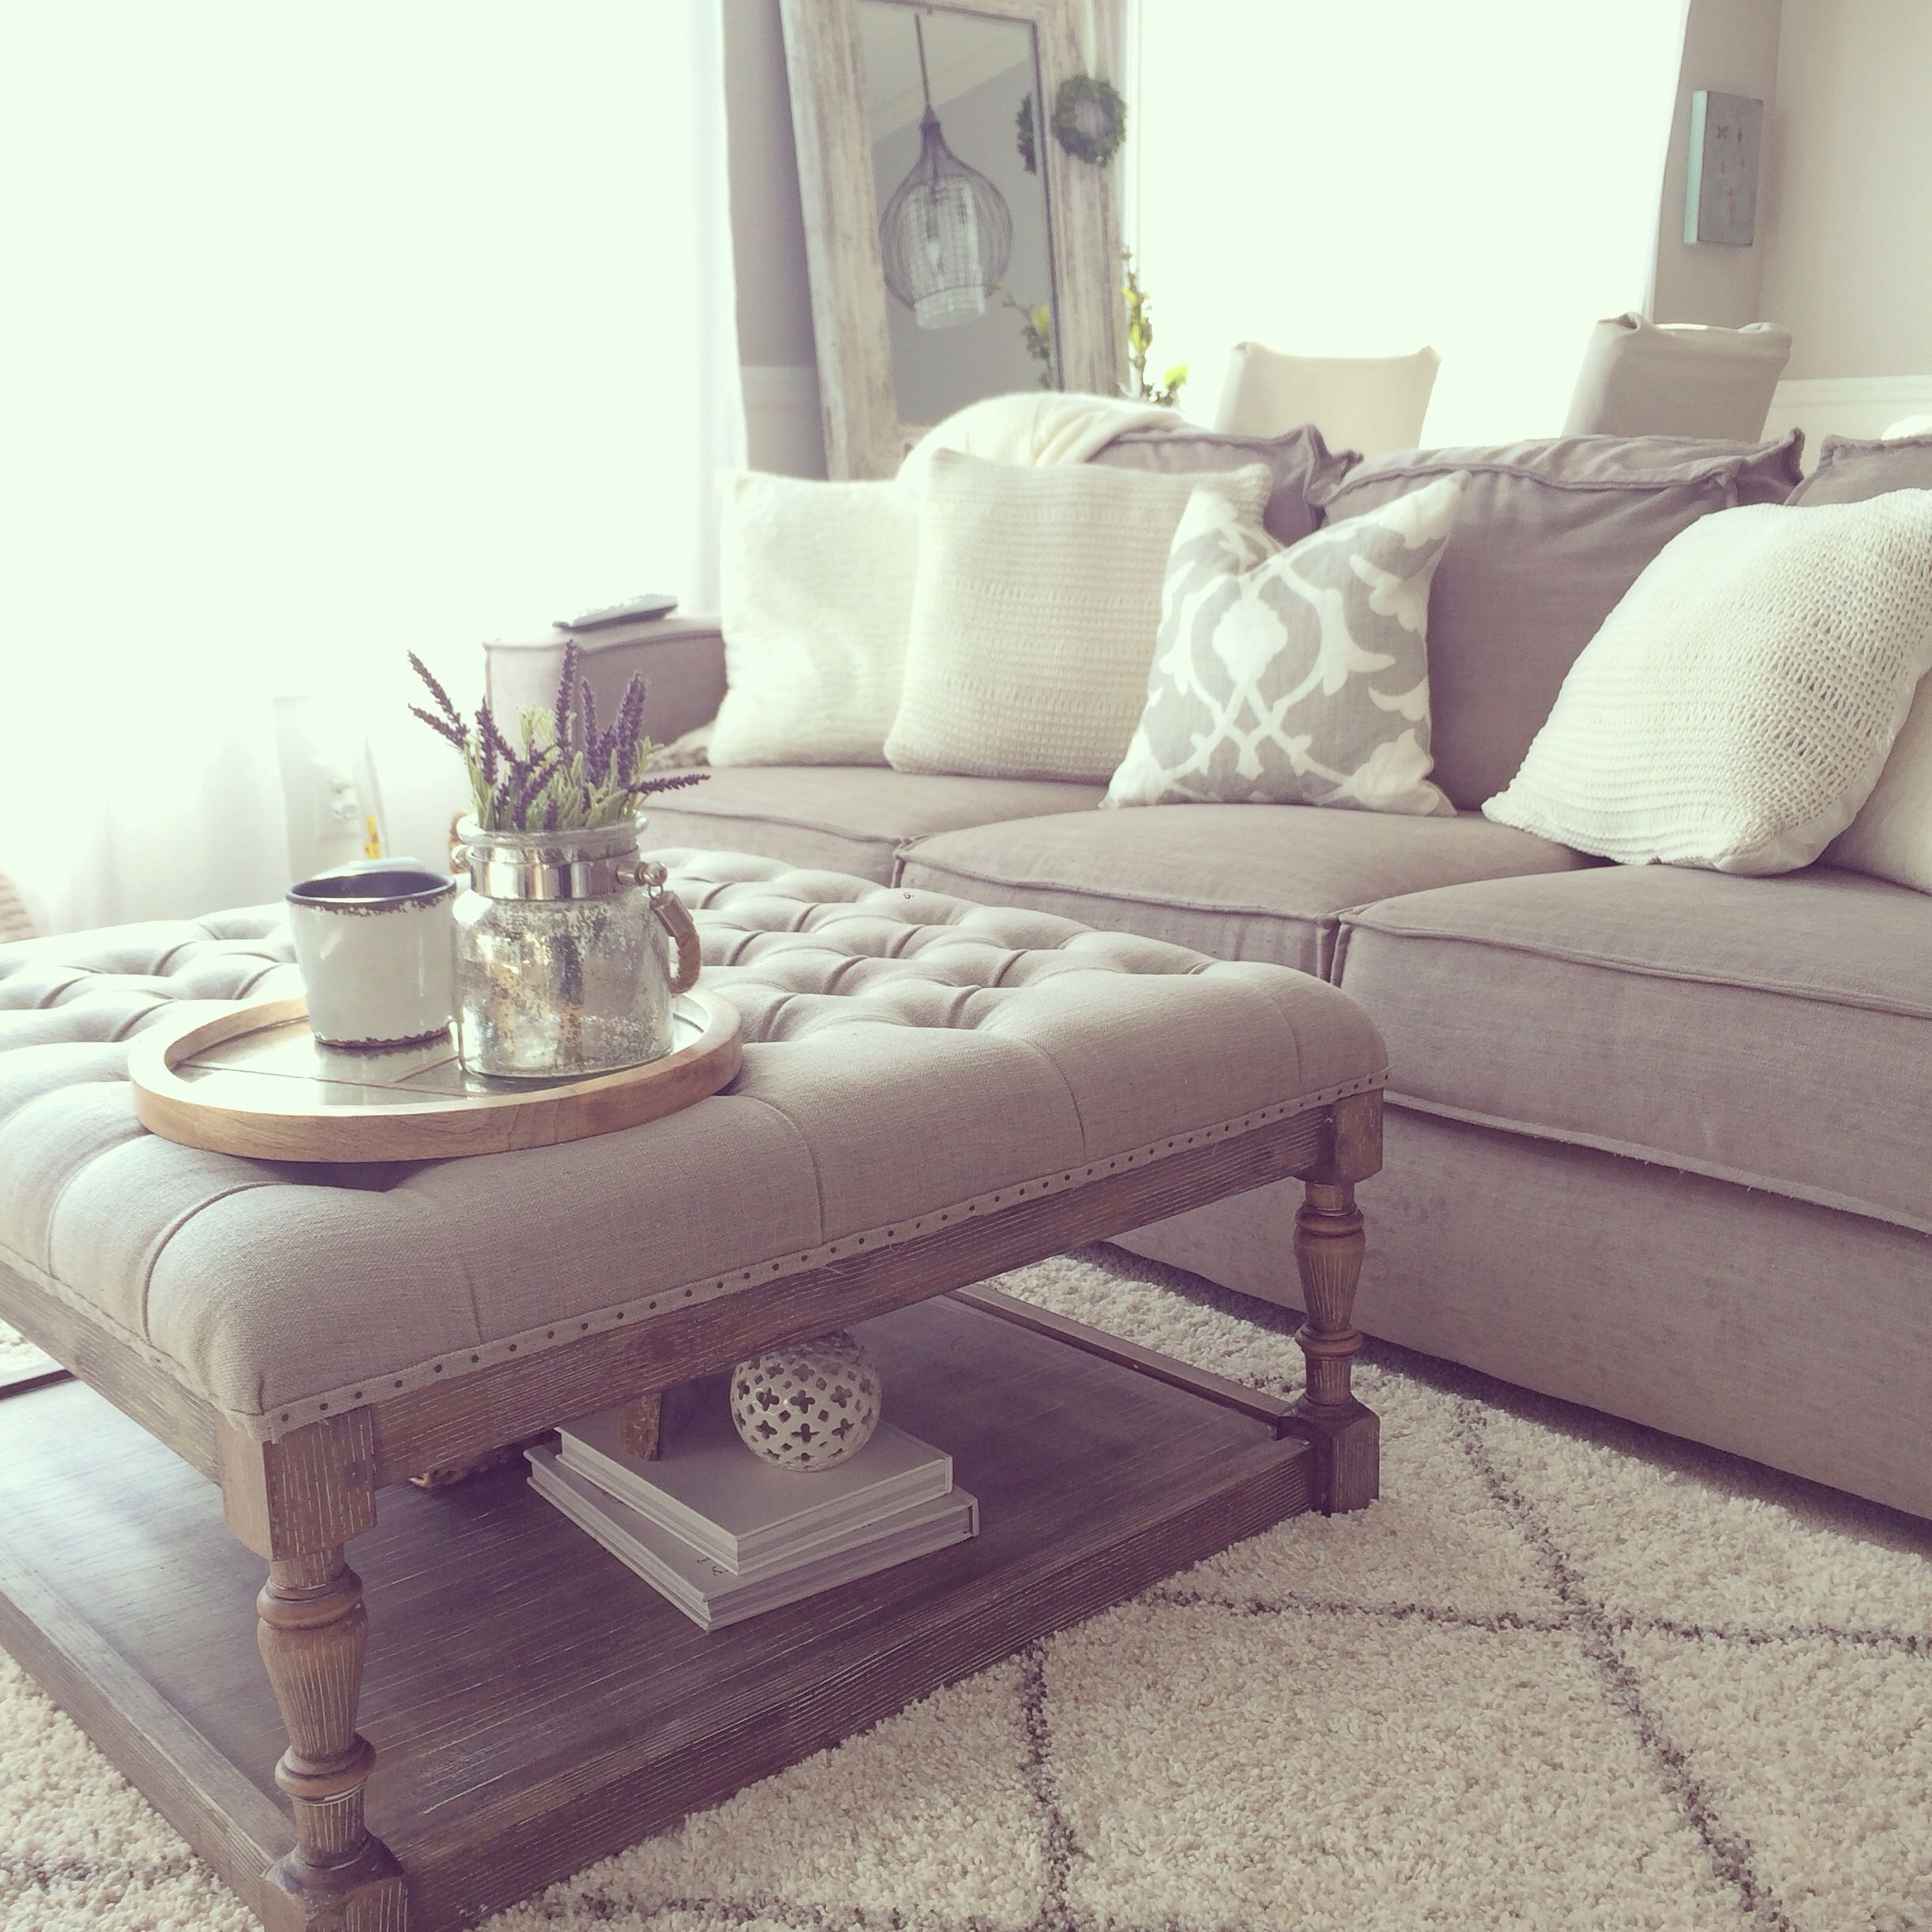 overstock tufted ottoman living room diy crafts pinte